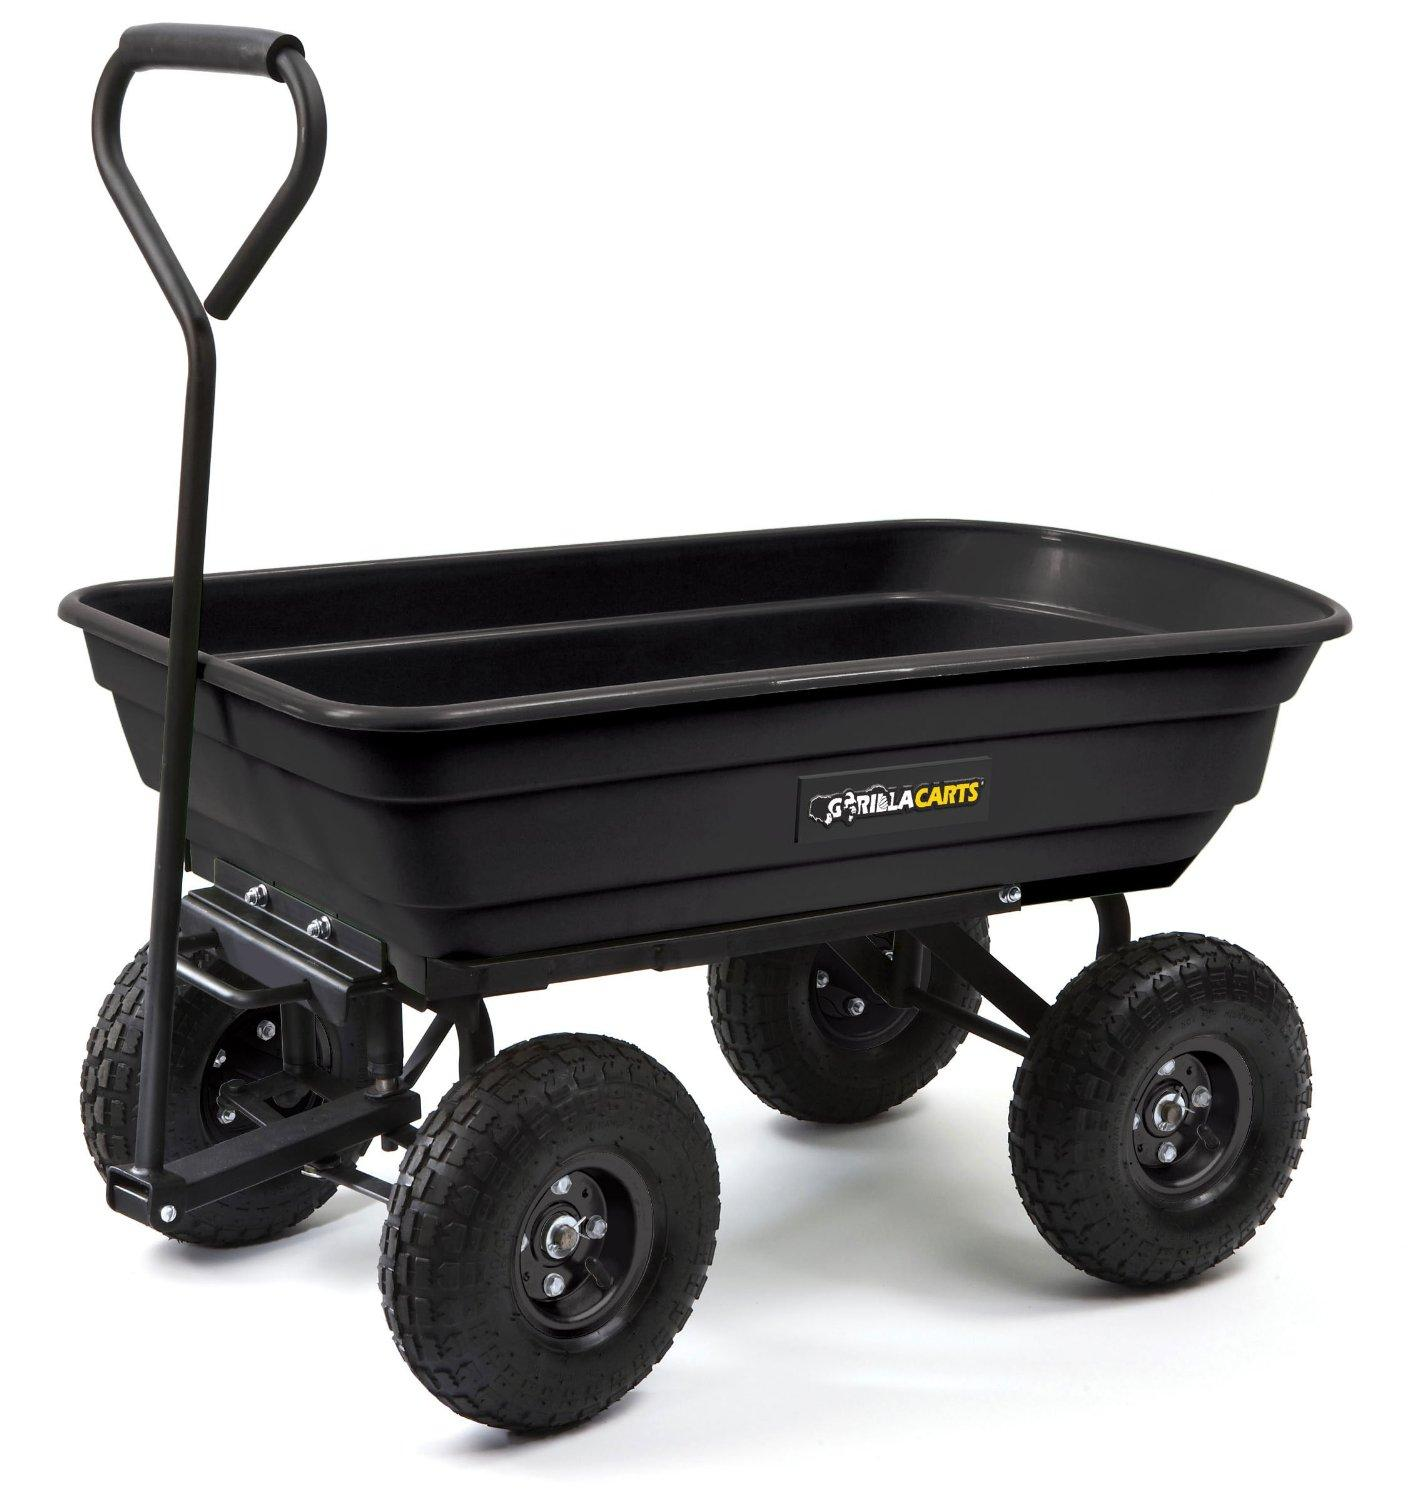 Factory Utility Cart: Amazon.com : Gorilla Carts GOR200B Poly Garden Dump Cart